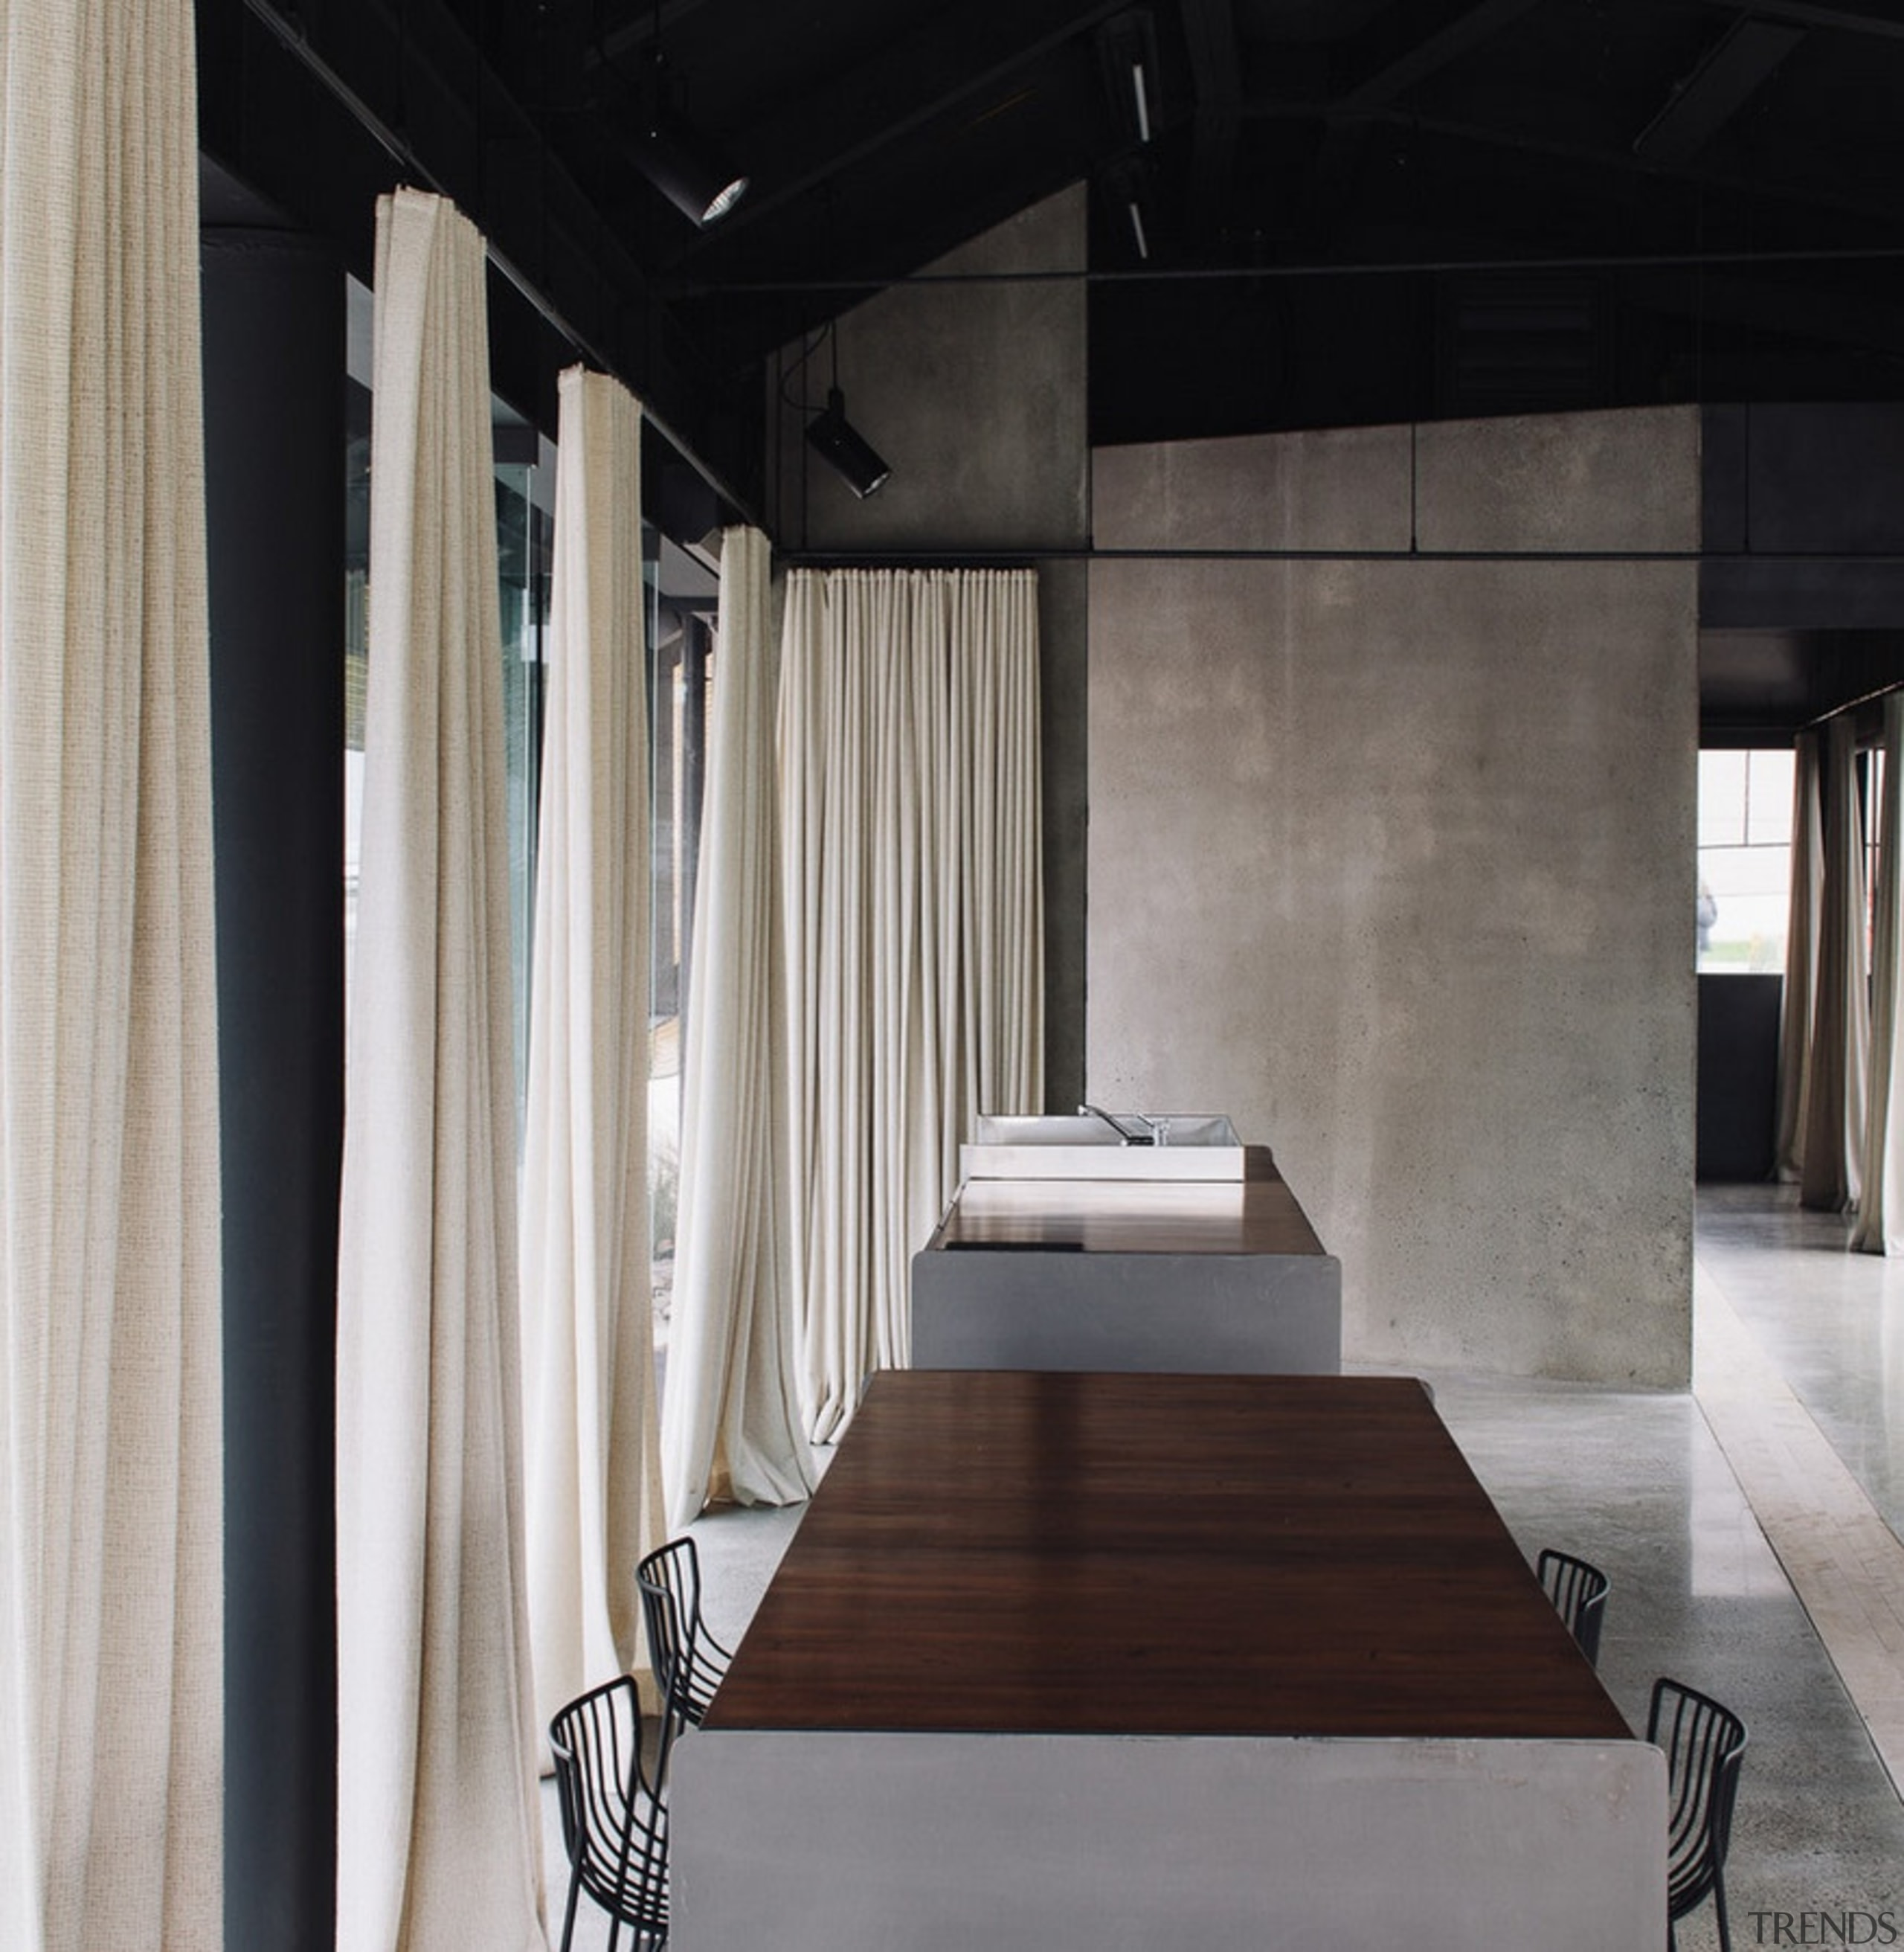 Winner of the Villa Category at the World architecture, ceiling, floor, flooring, furniture, interior design, table, wall, wood, gray, black